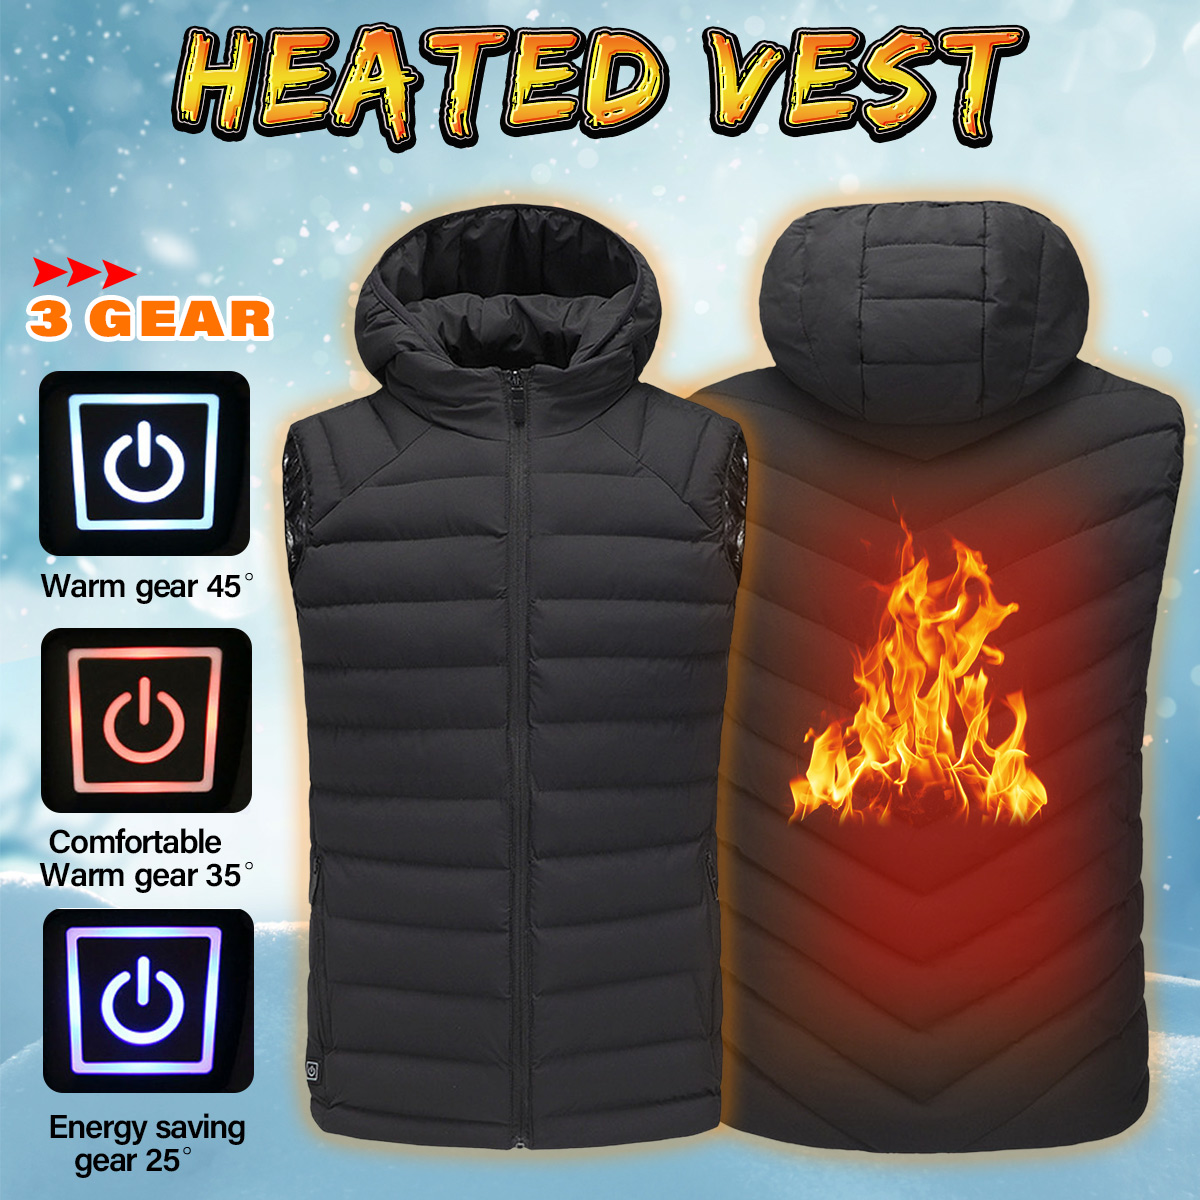 Safurance Mens Safety Vest Winter Heated Vest USB Hooded Work Jacket Adjustable Temperature Control Safety Work Clothes mens winter heated usb charge hooded work jacket coats vest adjustable temperature control safety clothing